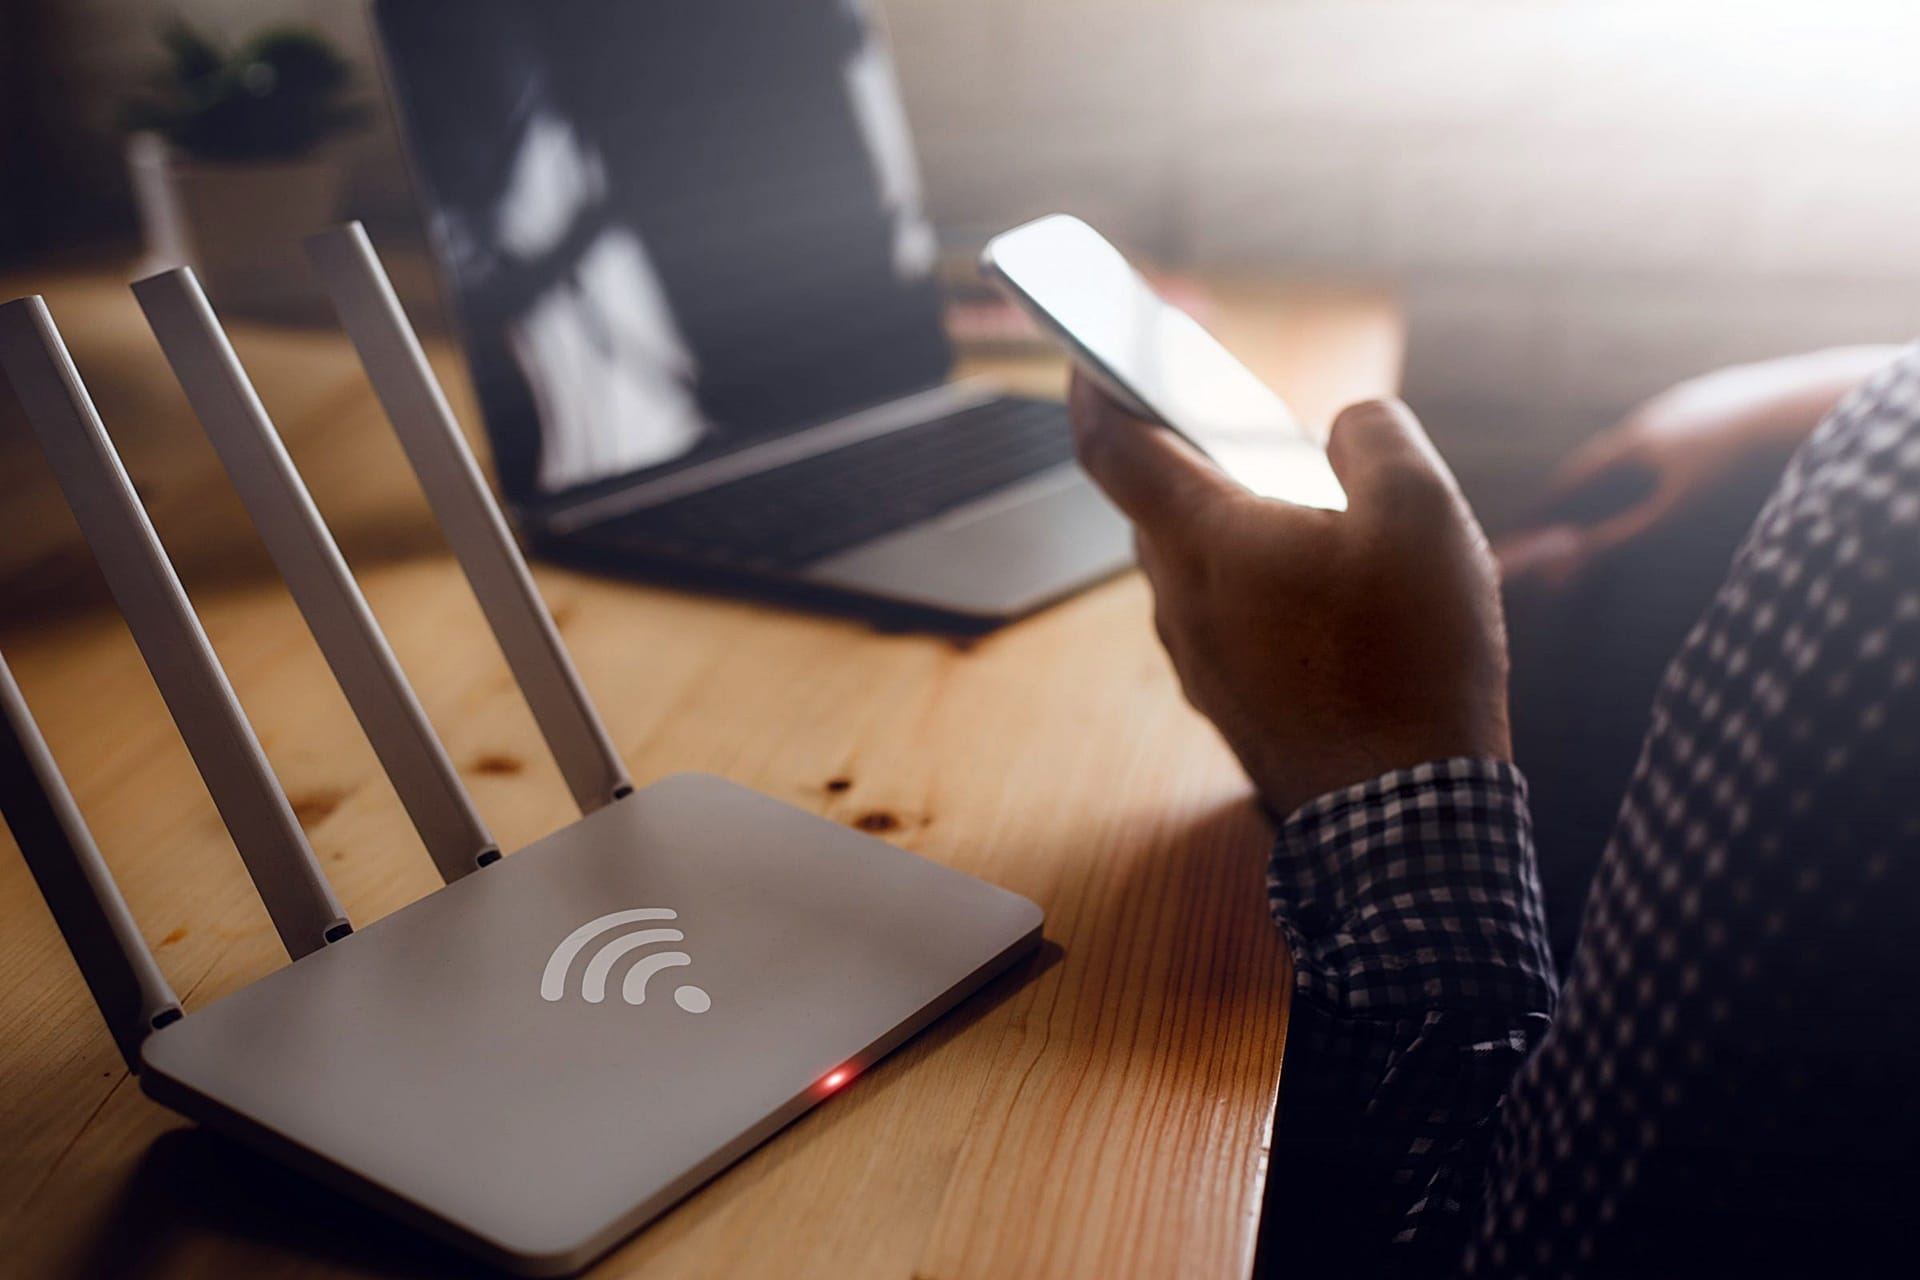 5 Best Routers for Wireless Internet and Streaming